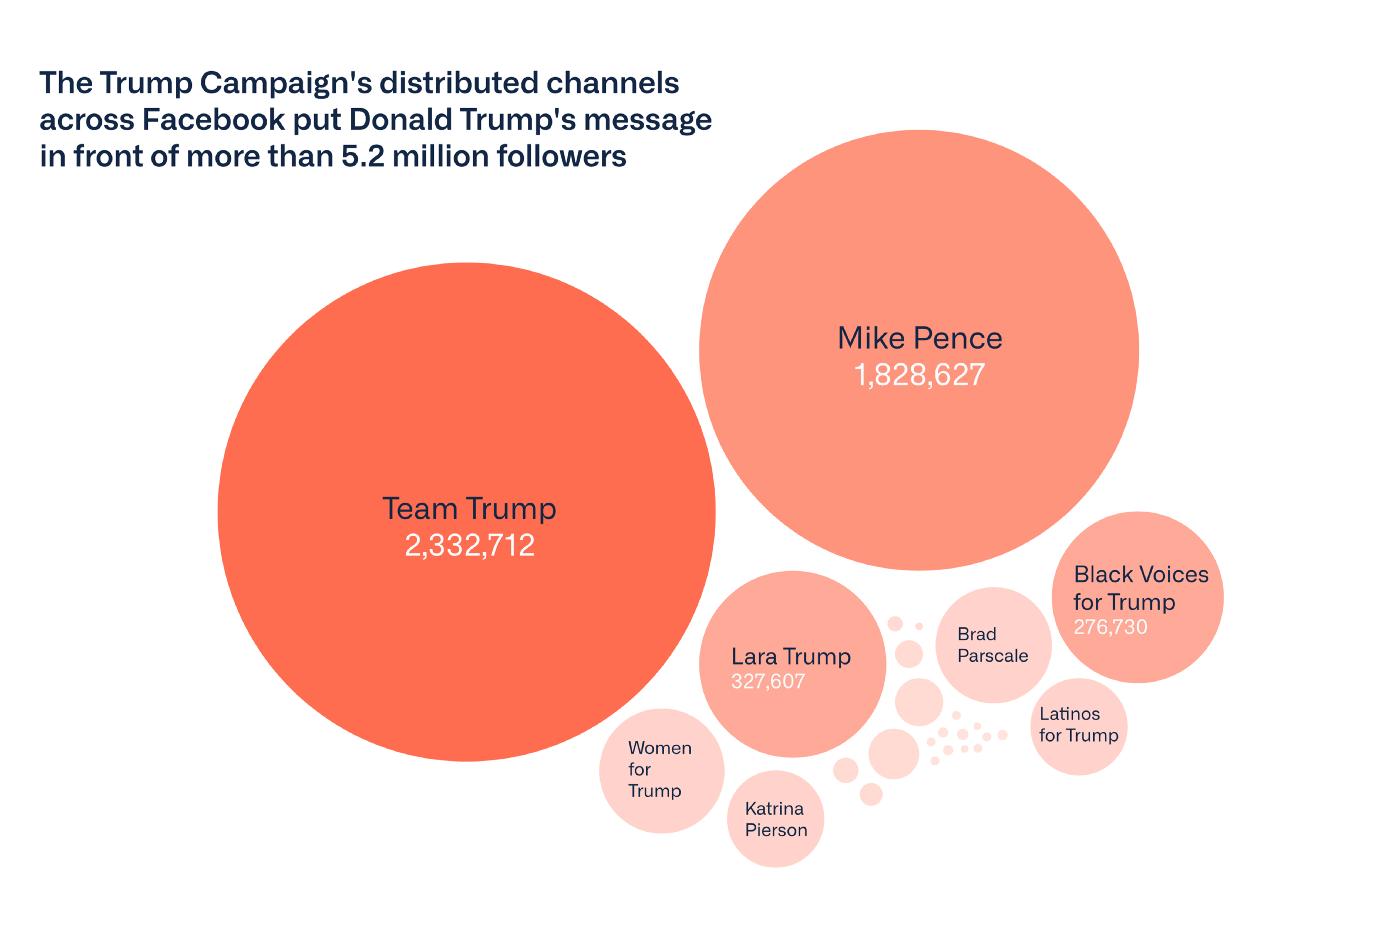 The Trump Campaign's distributed channels across Facebook put Trump's message in front of more than 5.2 million followers.